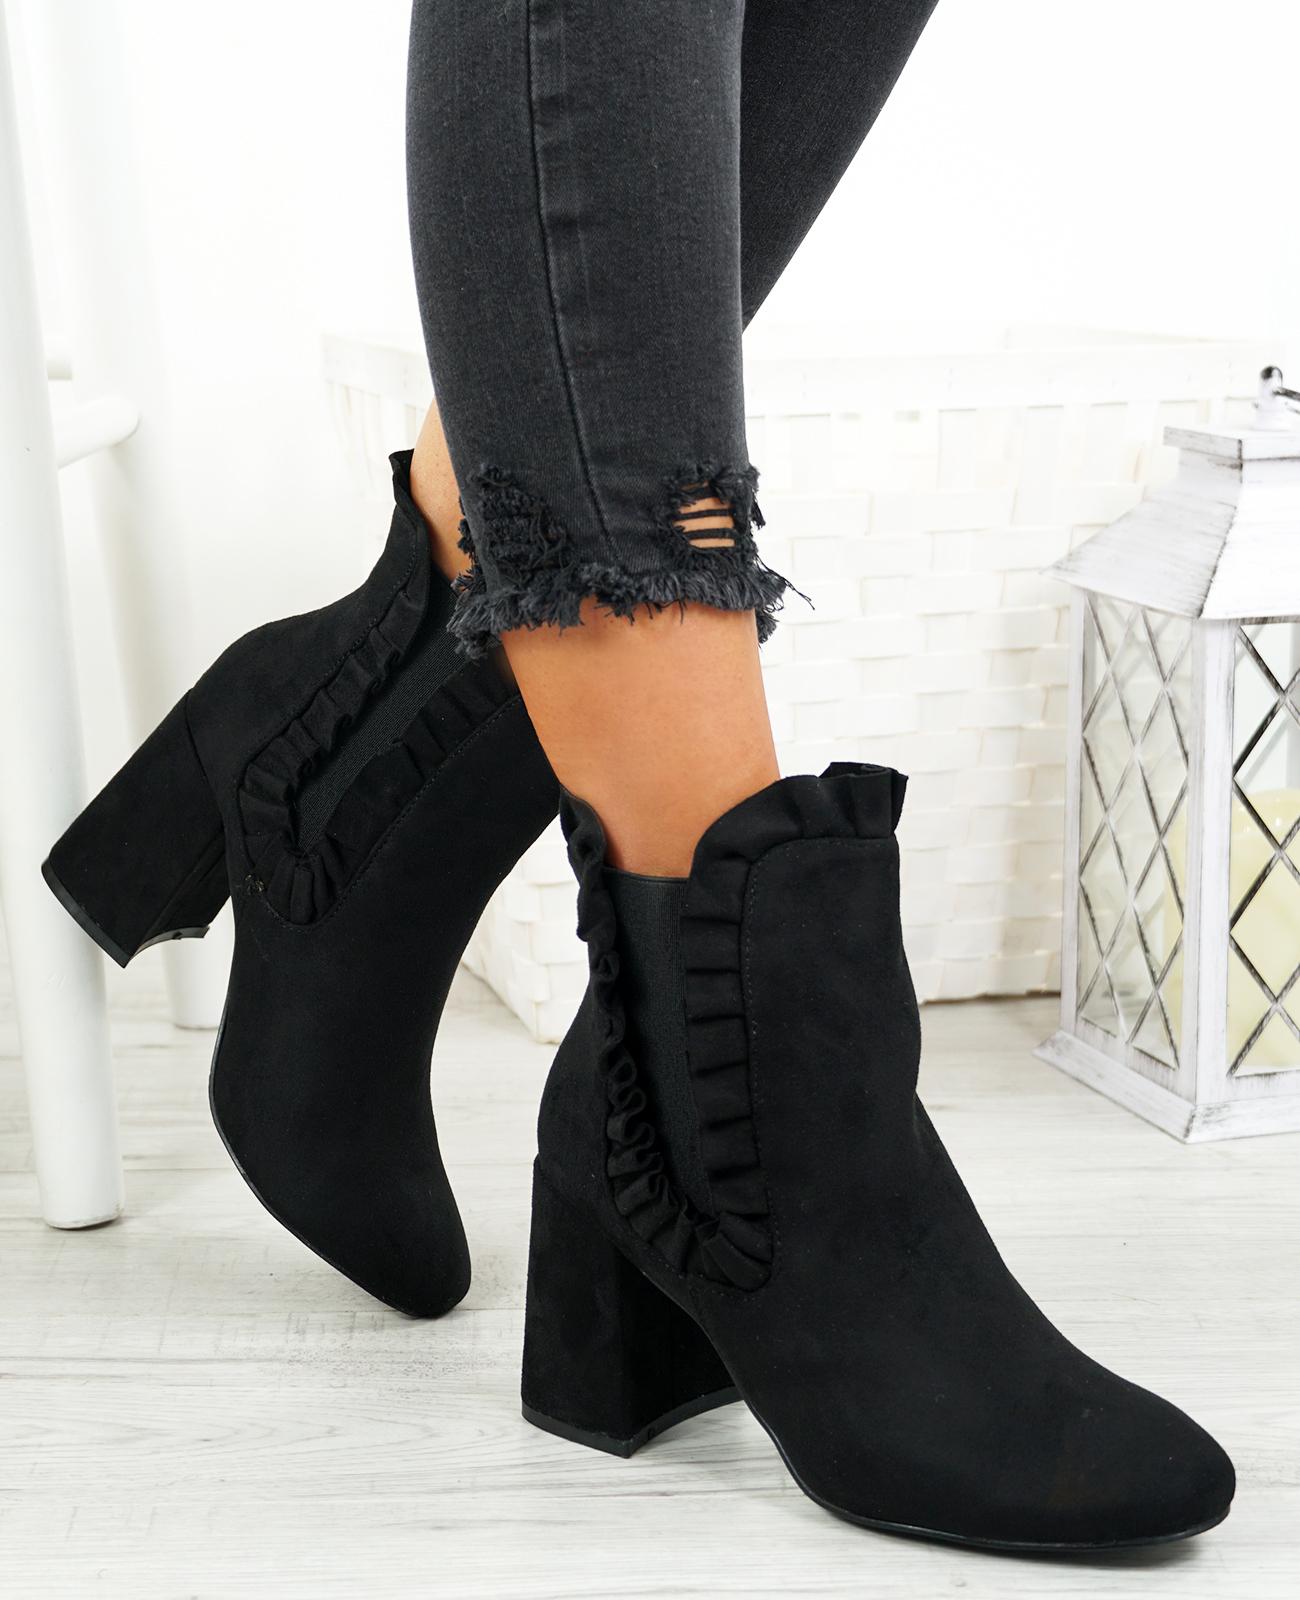 WOMENS-LADIES-RUFFLE-ANKLE-BOOTS-MID-HIGH-BLOCK-HEEL-CHELSEA-BOOT-SHOES-SIZE